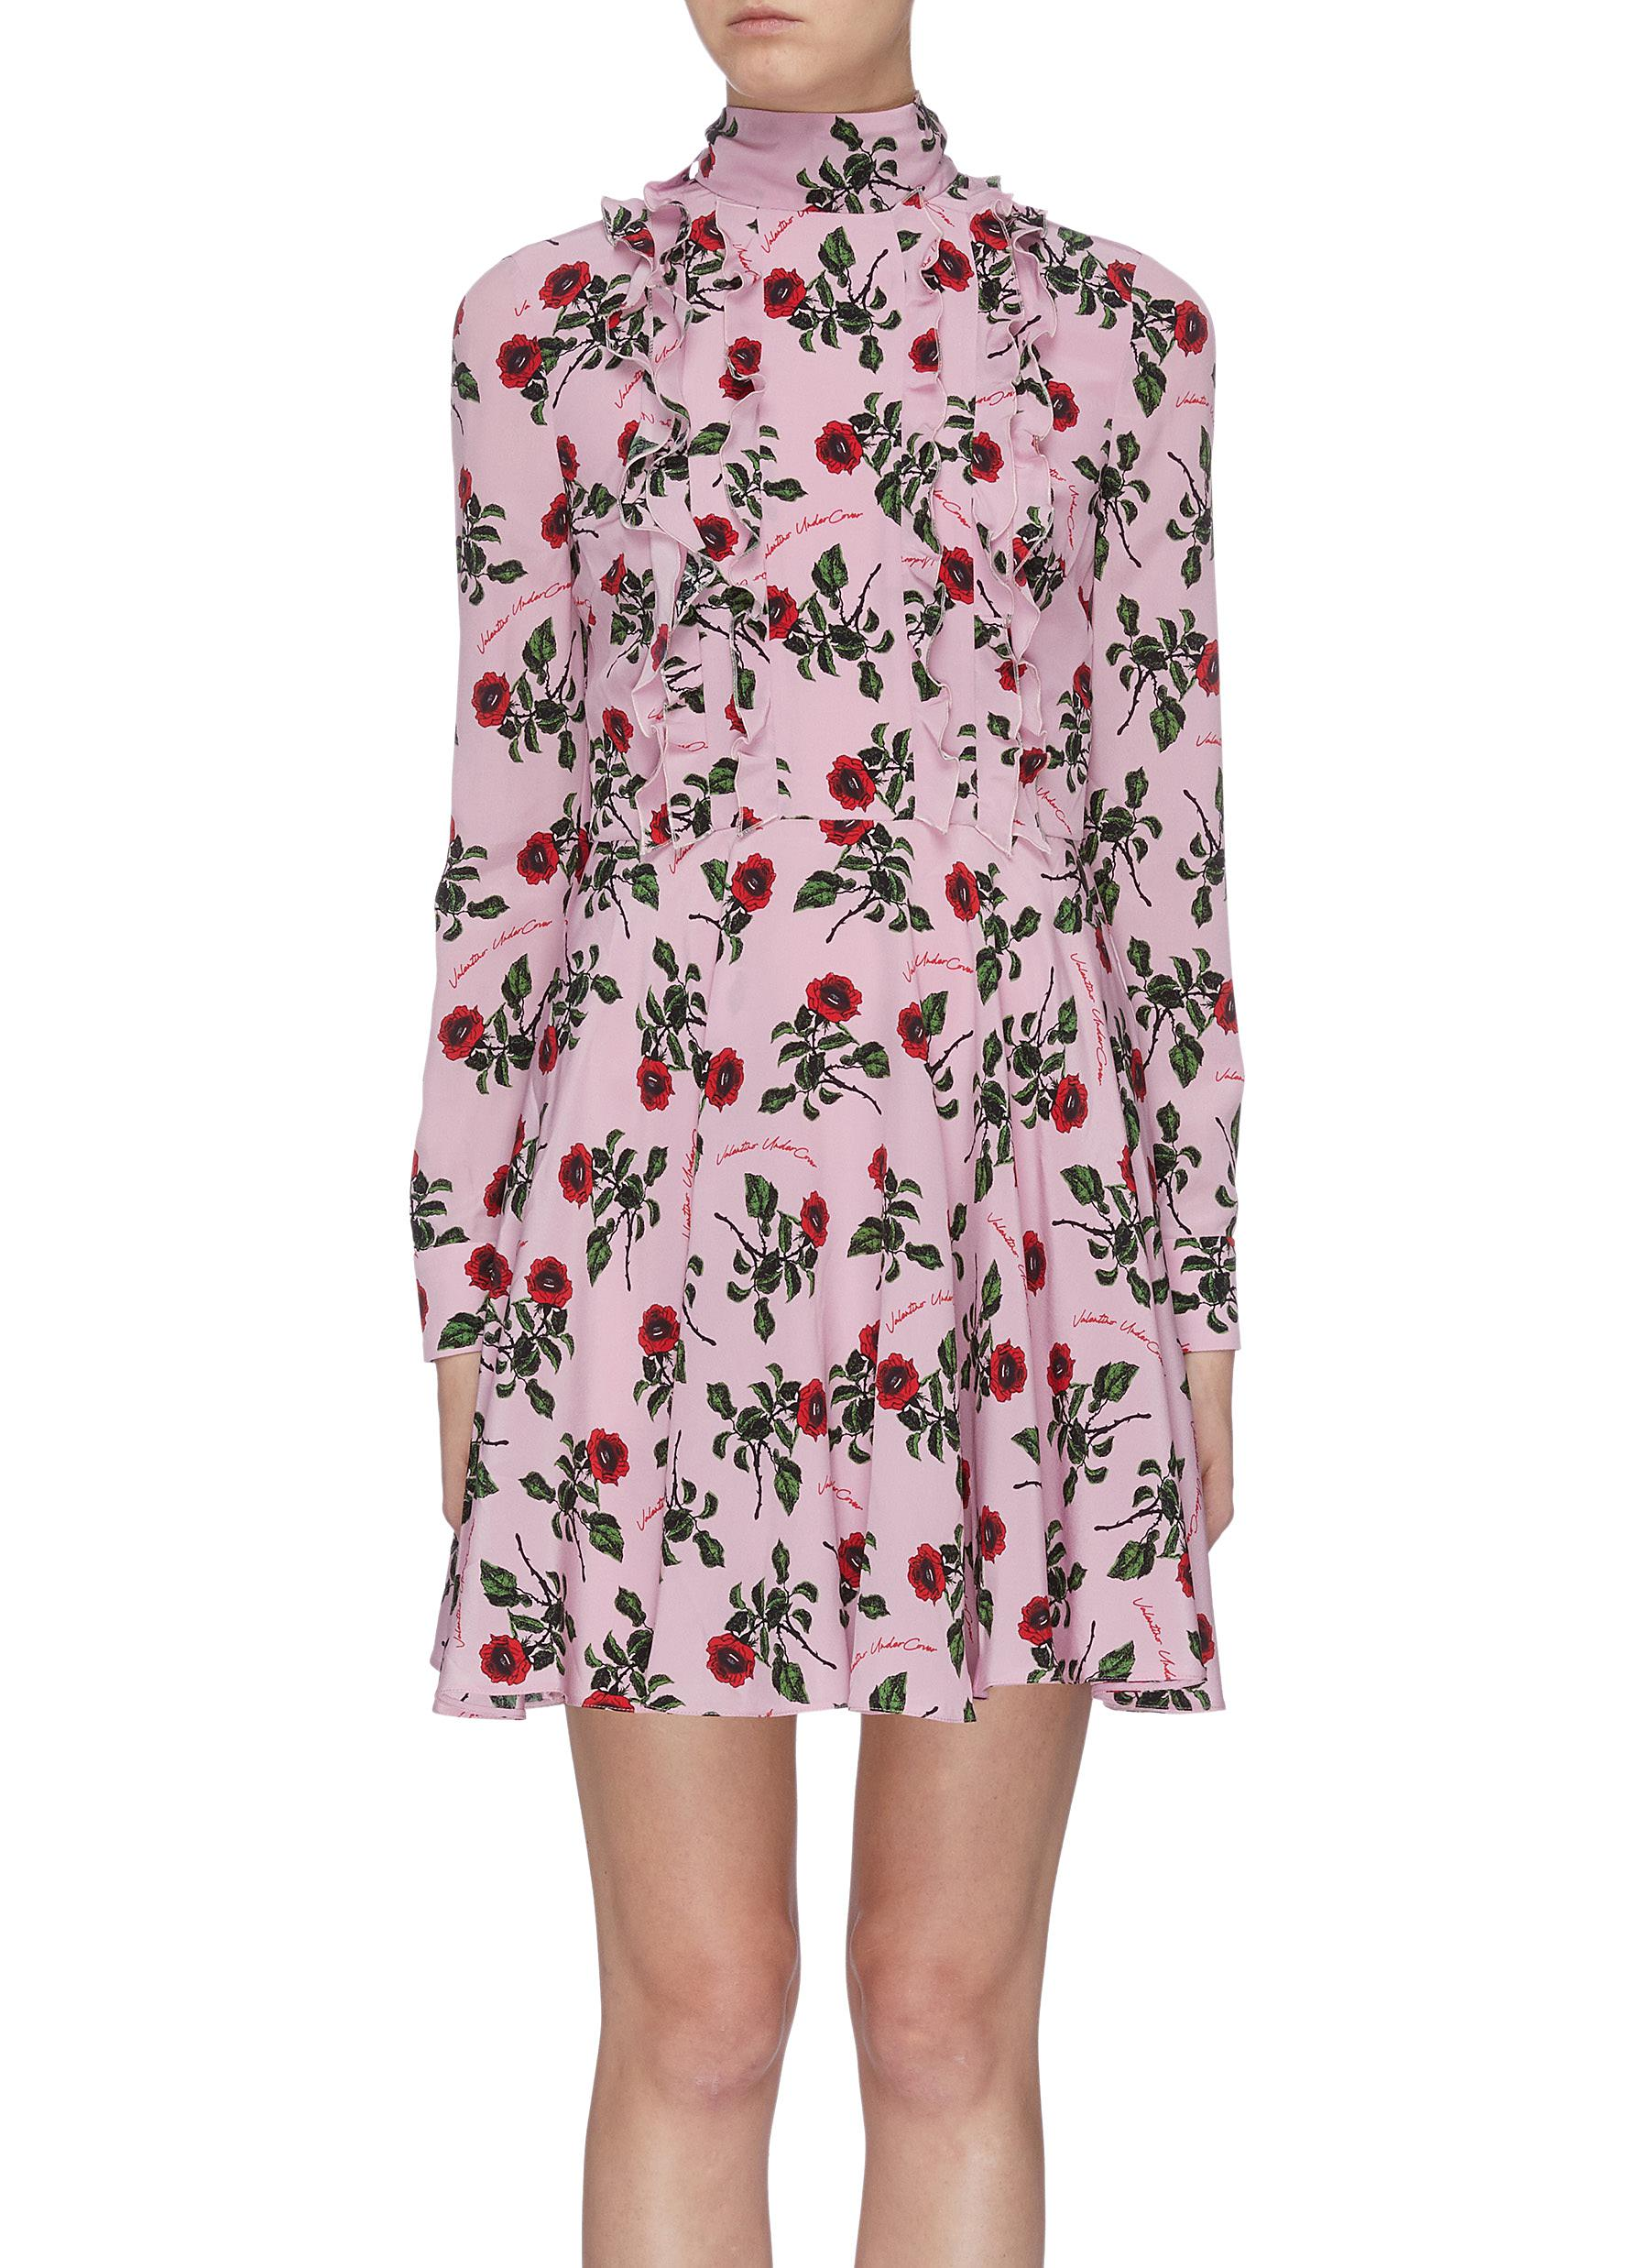 x UNDERCOVER ruffle rose print mock neck dress by Valentino